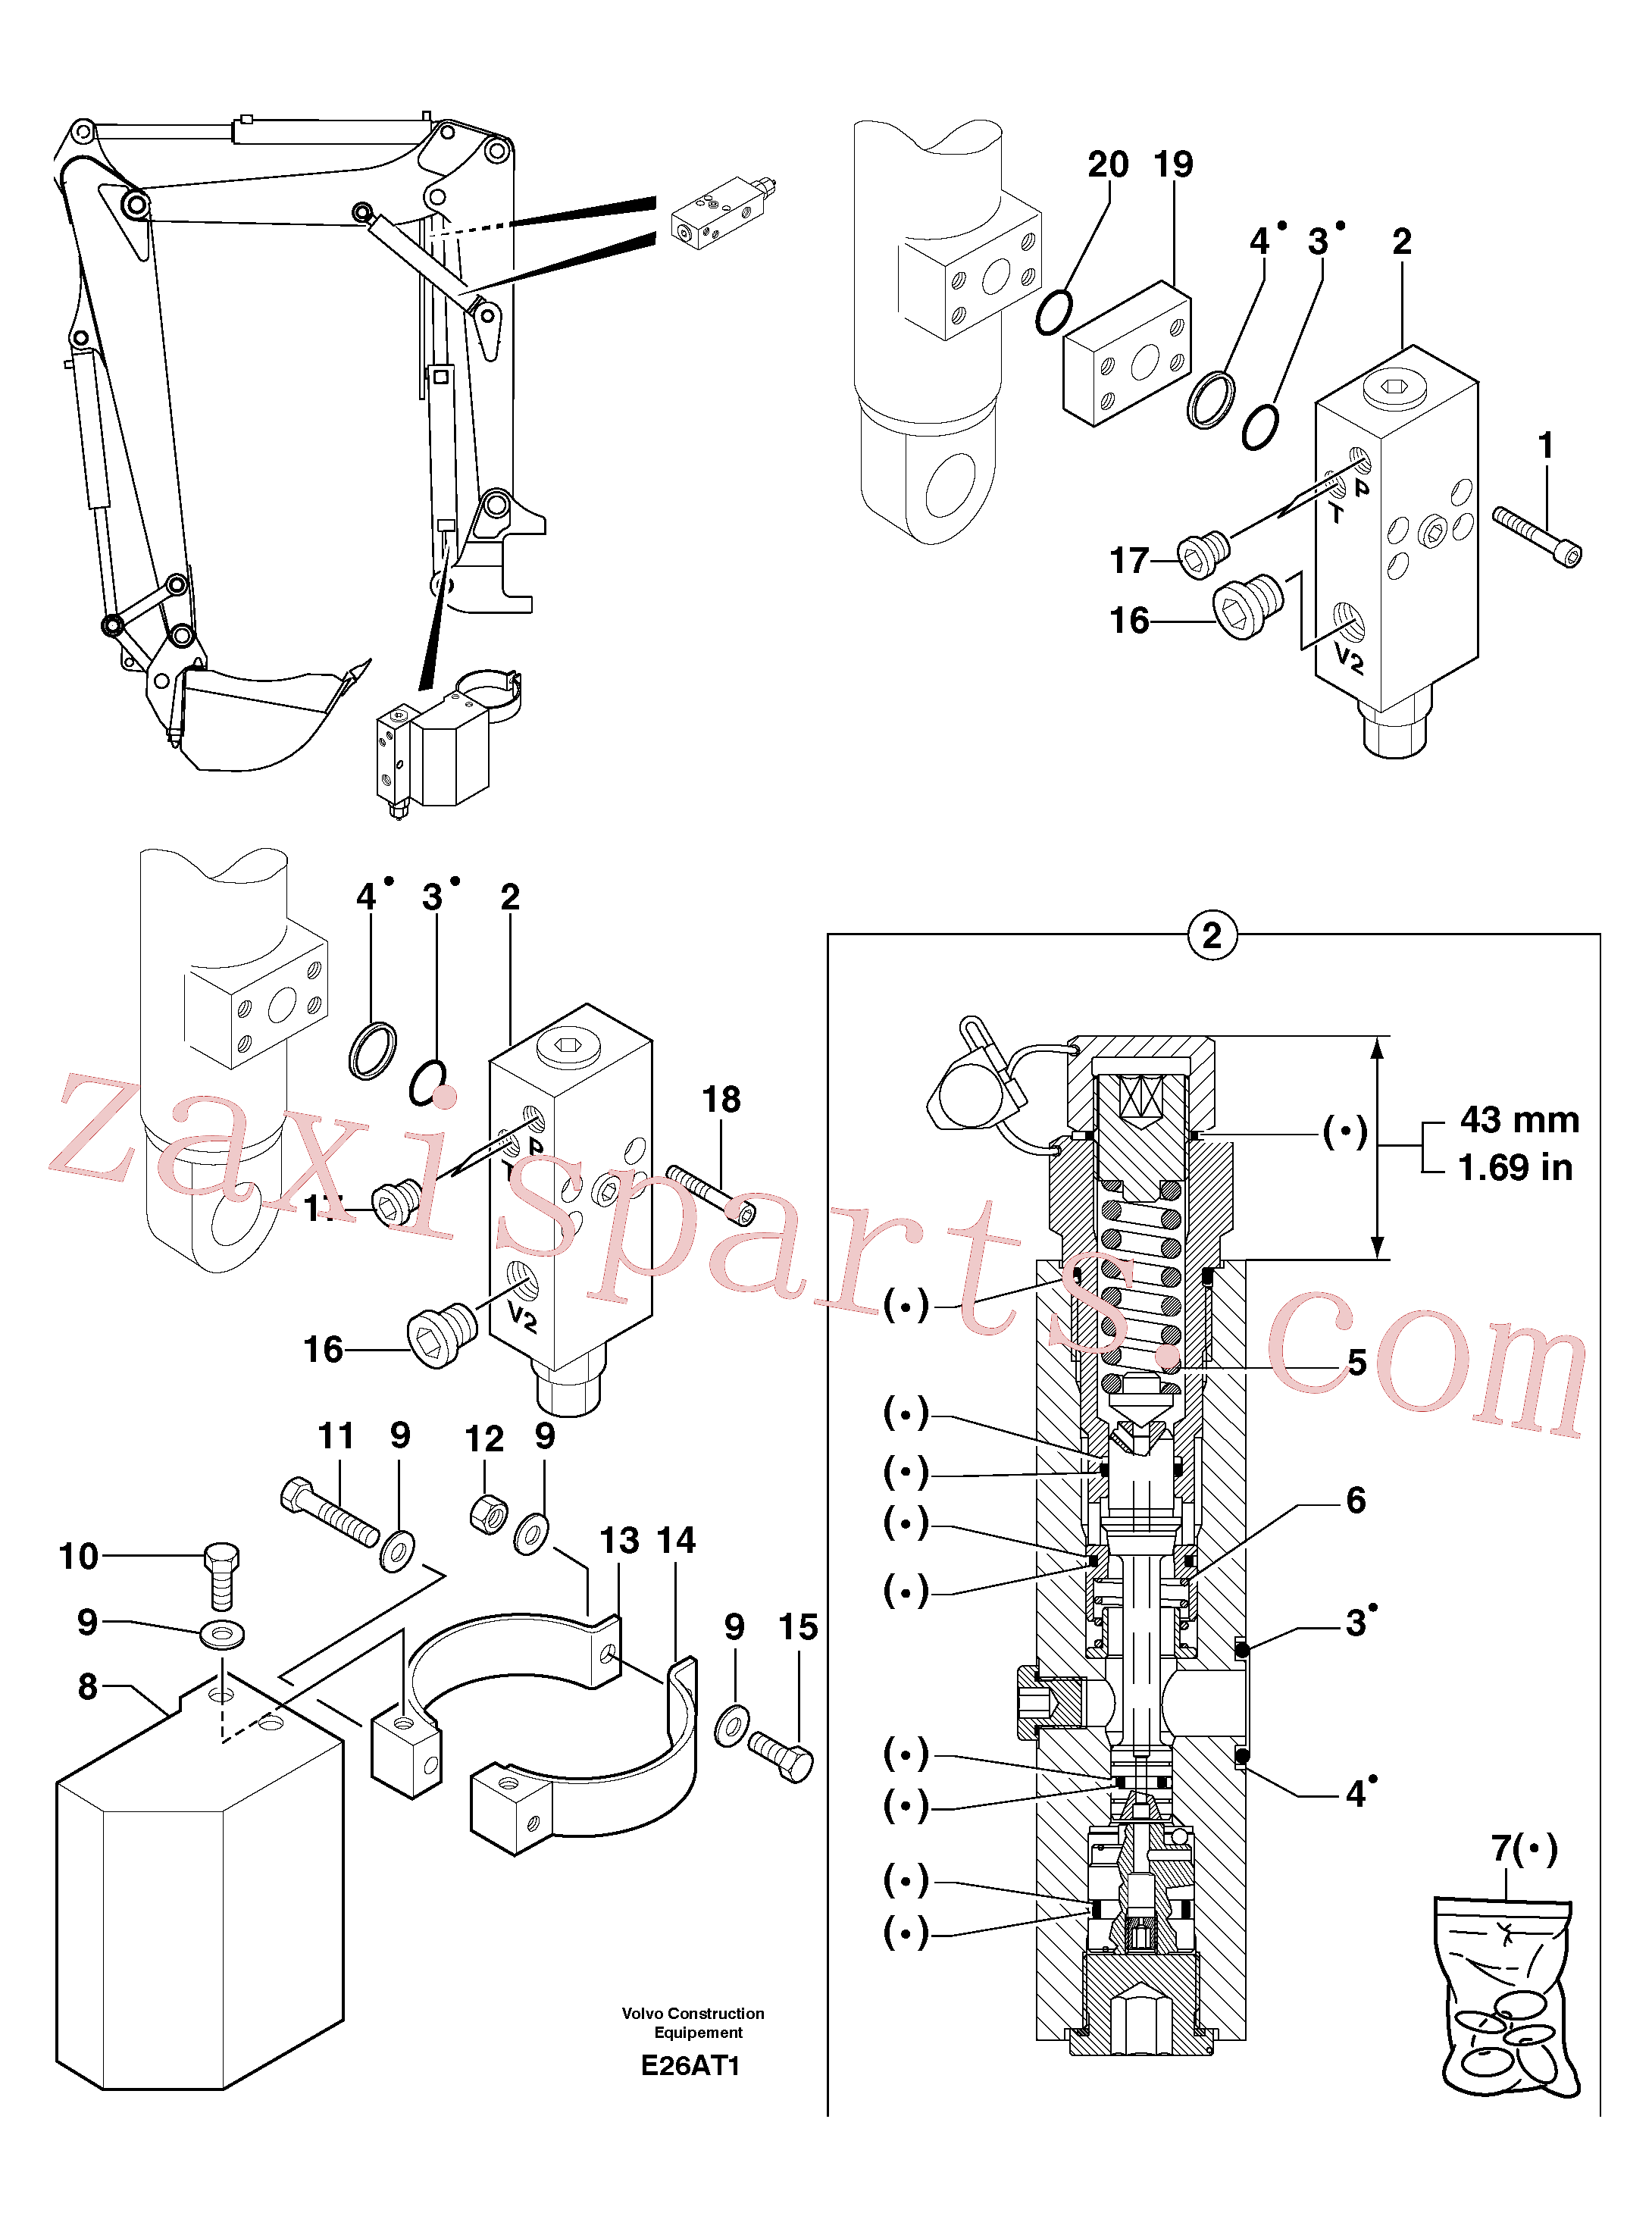 PJ4770724 for Volvo Safety valve ( boom cylinder )(E26AT1 assembly)